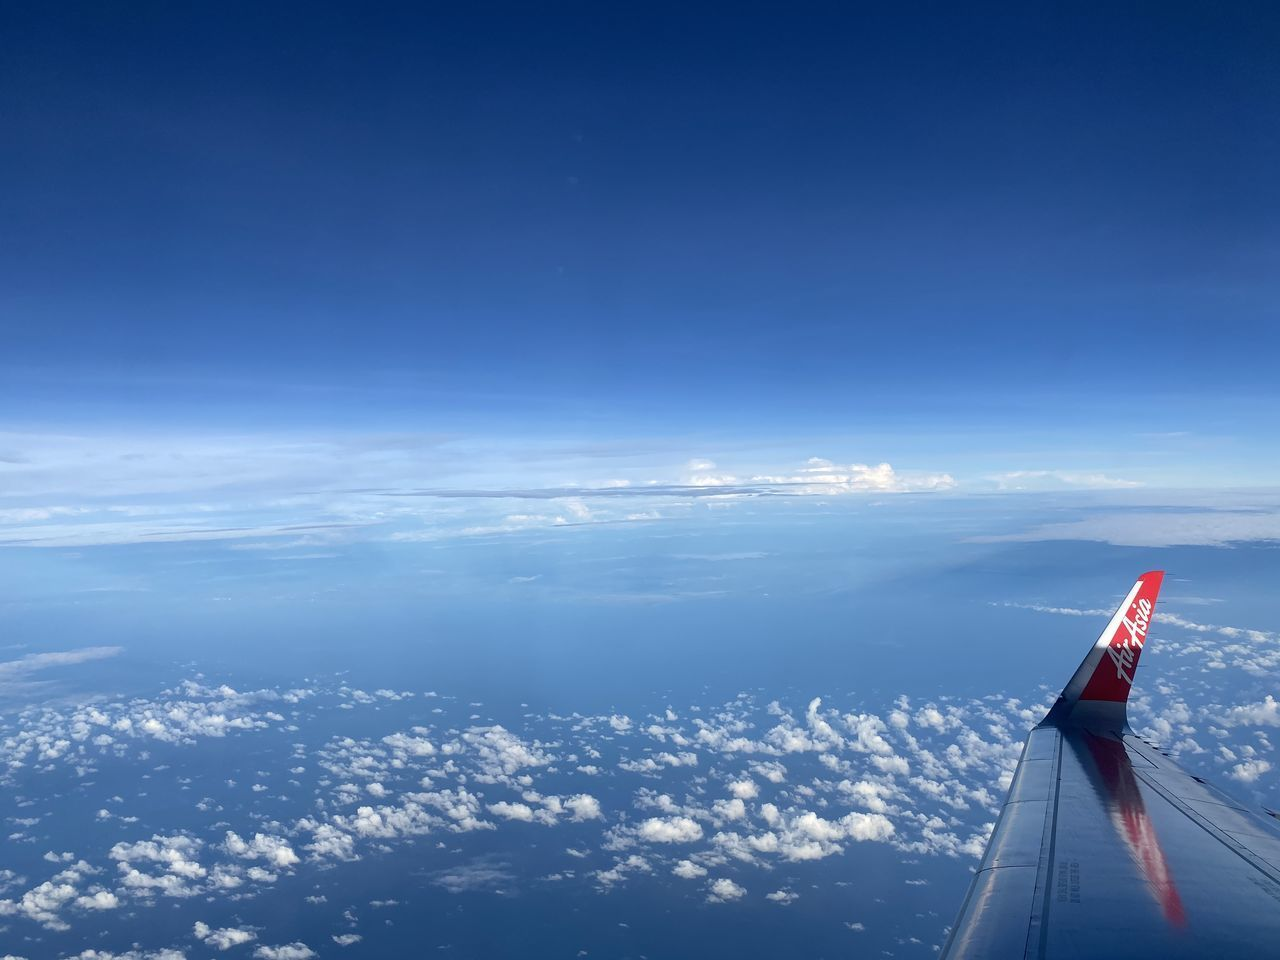 AERIAL VIEW OF AIRPLANE FLYING OVER BLUE SKY